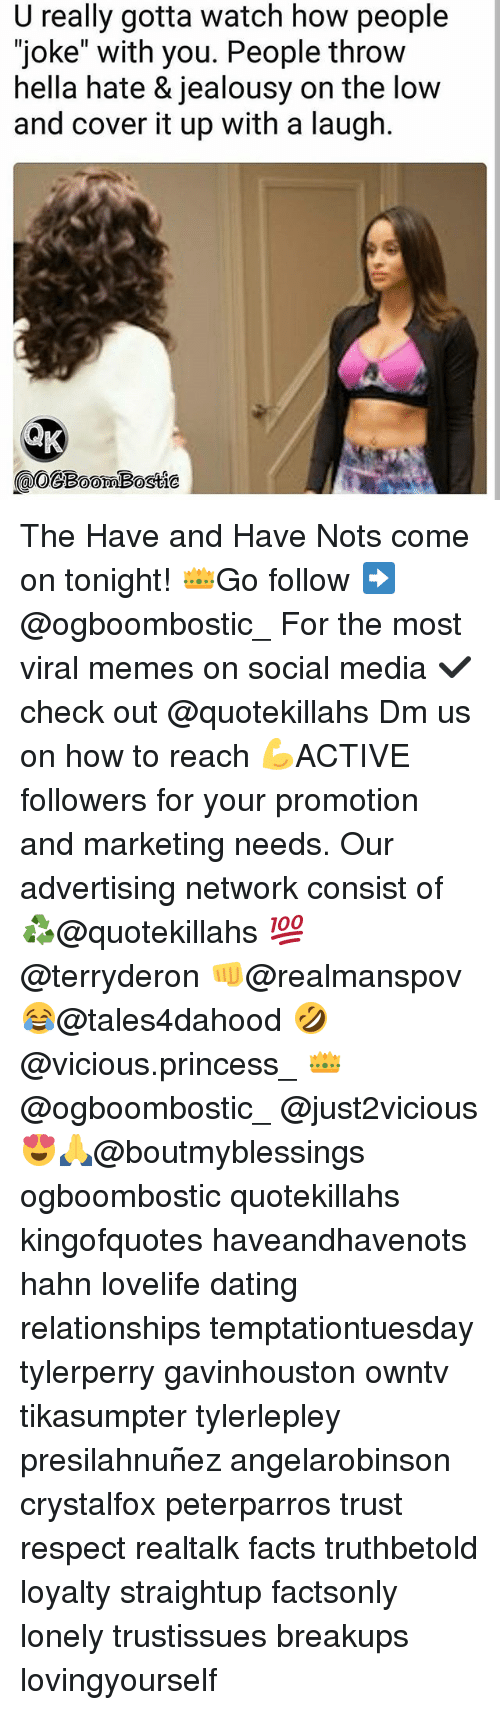 "Dating, Facts, and Memes: U really gotta watch how people  ""joke"" with you. People throw  hella hate & jealousy on the low  and cover it up with a laugh  @OCBoomBostte  omBostie The Have and Have Nots come on tonight! 👑Go follow ➡@ogboombostic_ For the most viral memes on social media ✔check out @quotekillahs Dm us on how to reach 💪ACTIVE followers for your promotion and marketing needs. Our advertising network consist of ♻@quotekillahs 💯@terryderon 👊@realmanspov 😂@tales4dahood 🤣@vicious.princess_ 👑@ogboombostic_ @just2vicious😍🙏@boutmyblessings ogboombostic quotekillahs kingofquotes haveandhavenots hahn lovelife dating relationships temptationtuesday tylerperry gavinhouston owntv tikasumpter tylerlepley presilahnuñez angelarobinson crystalfox peterparros trust respect realtalk facts truthbetold loyalty straightup factsonly lonely trustissues breakups lovingyourself"